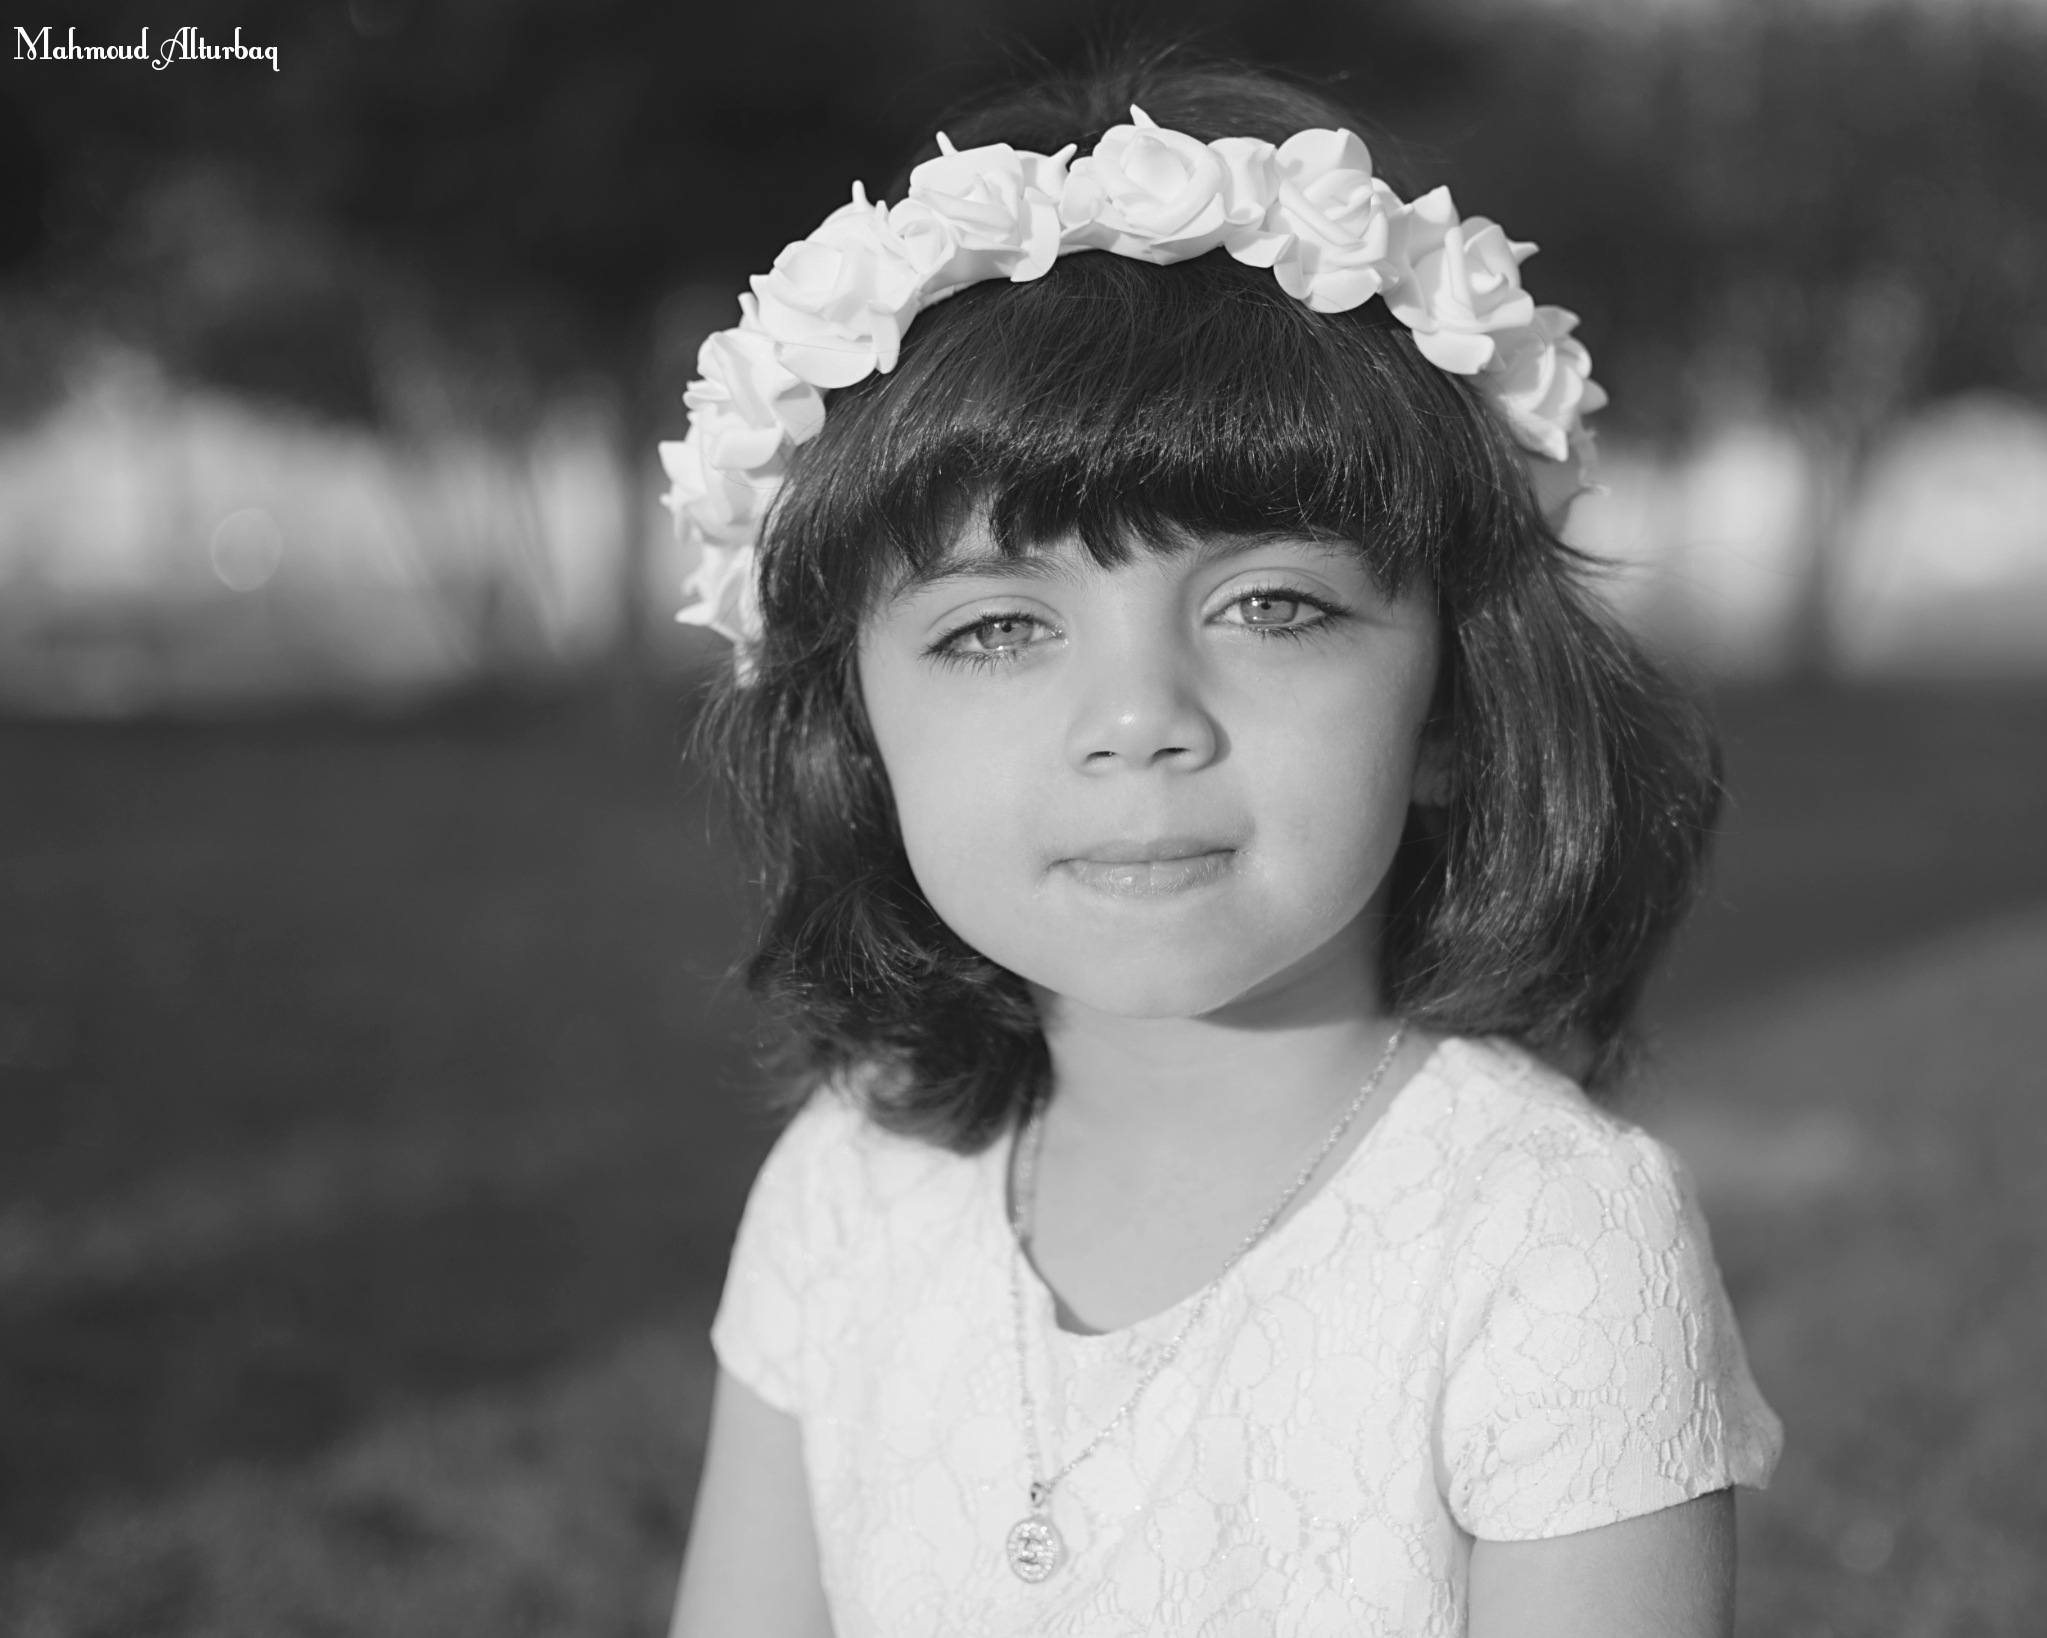 My little princess  by Mahmoud Alturbaq